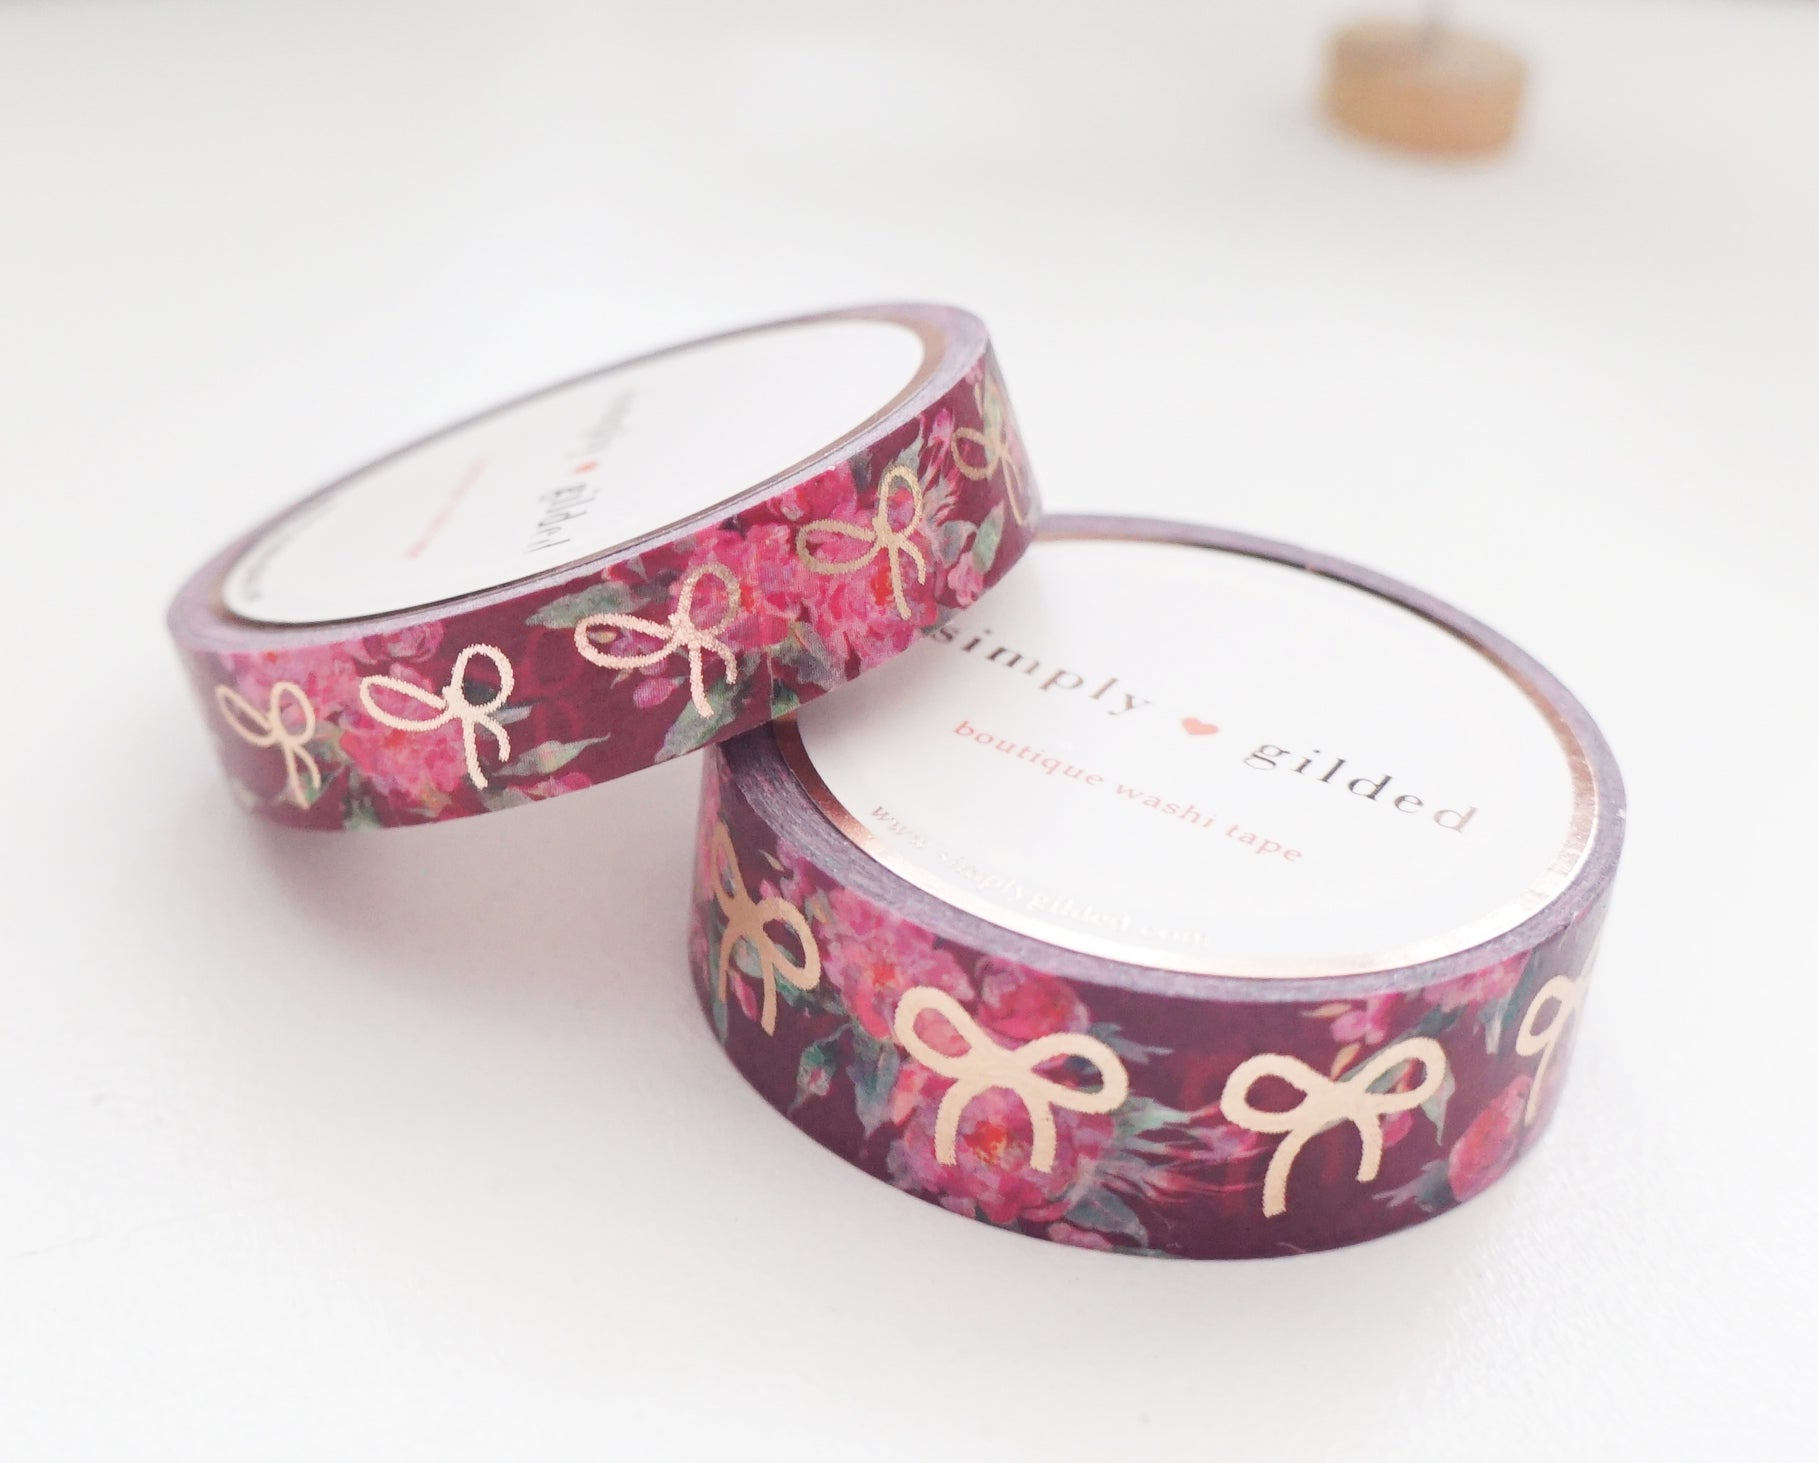 WASHI TAPE 15/10mm BOW set - MAROON Floral + ROSE gold foil